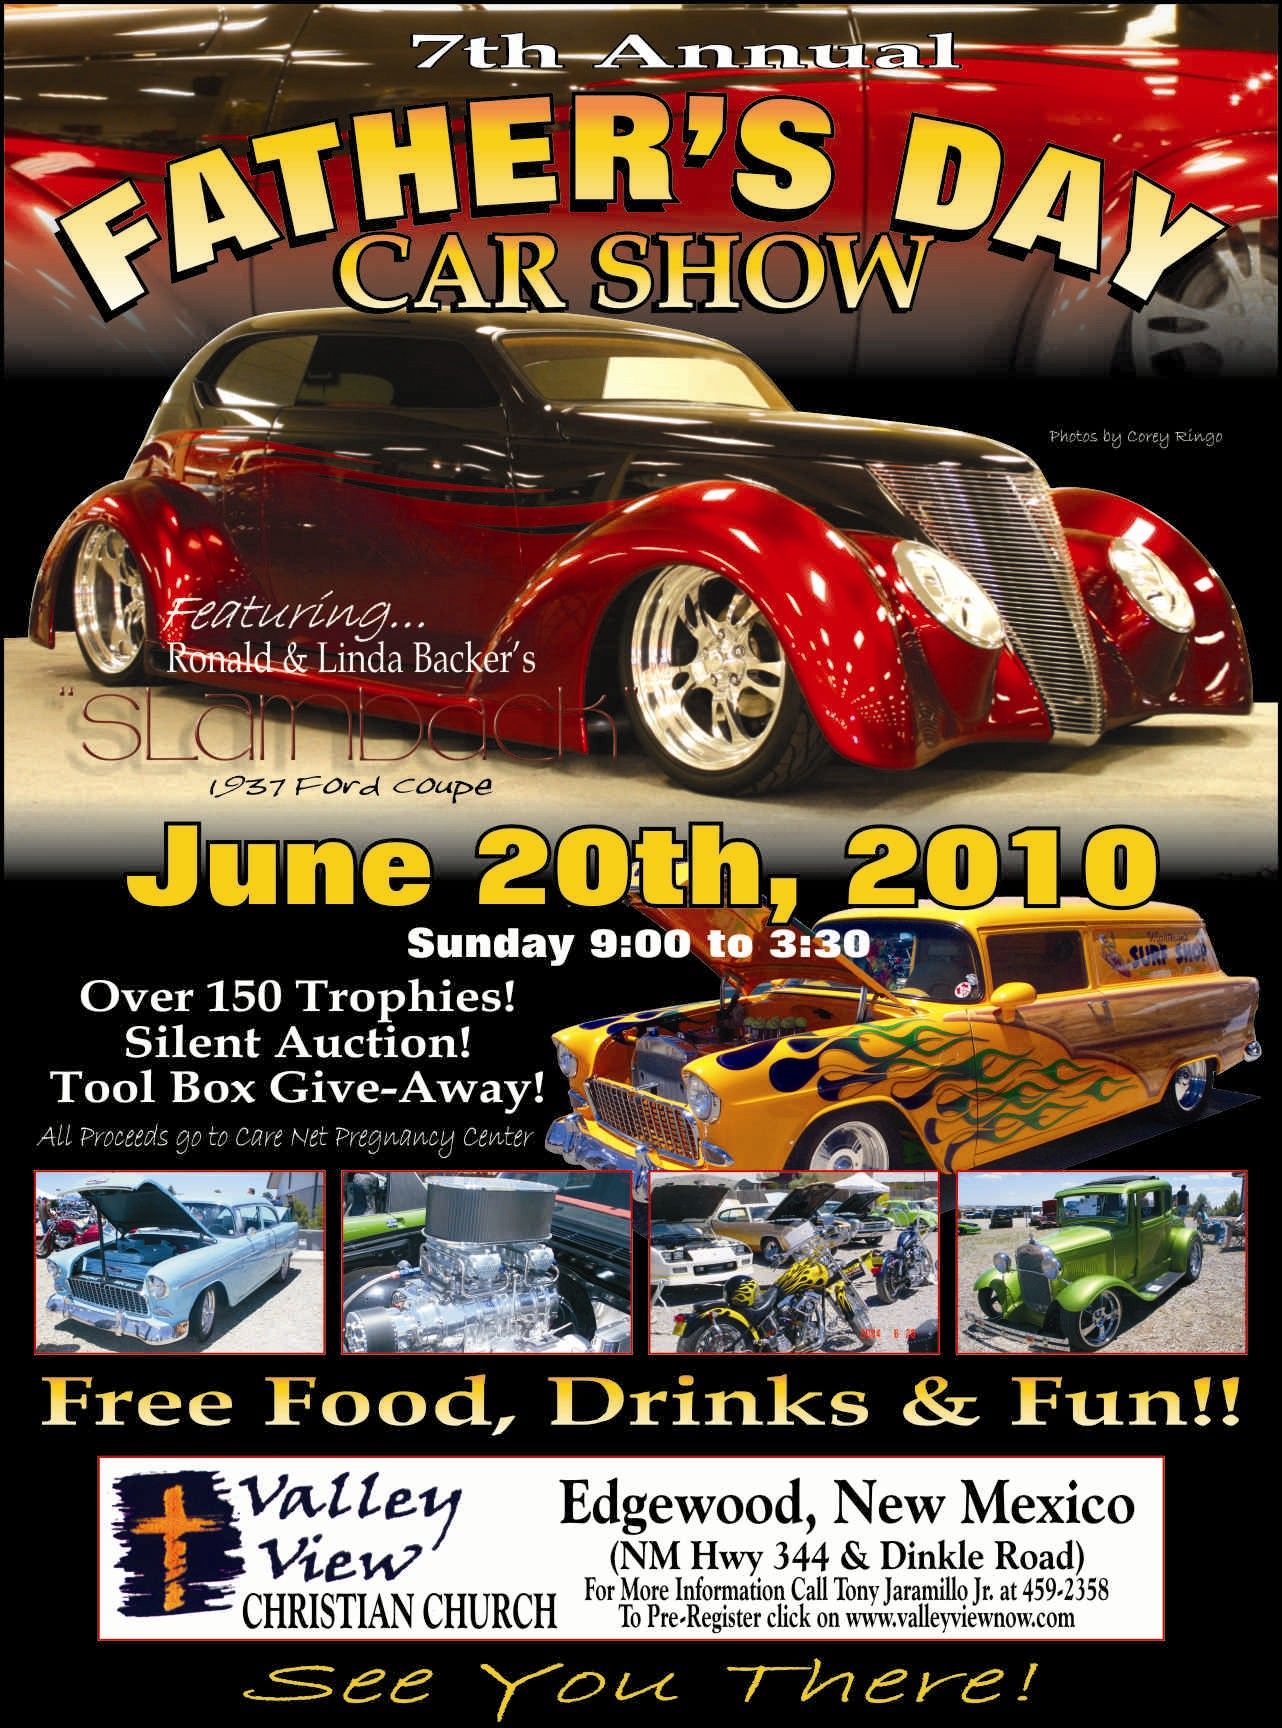 Seventh Annual Fathers Day Car Show Edgewood NM - Car show games